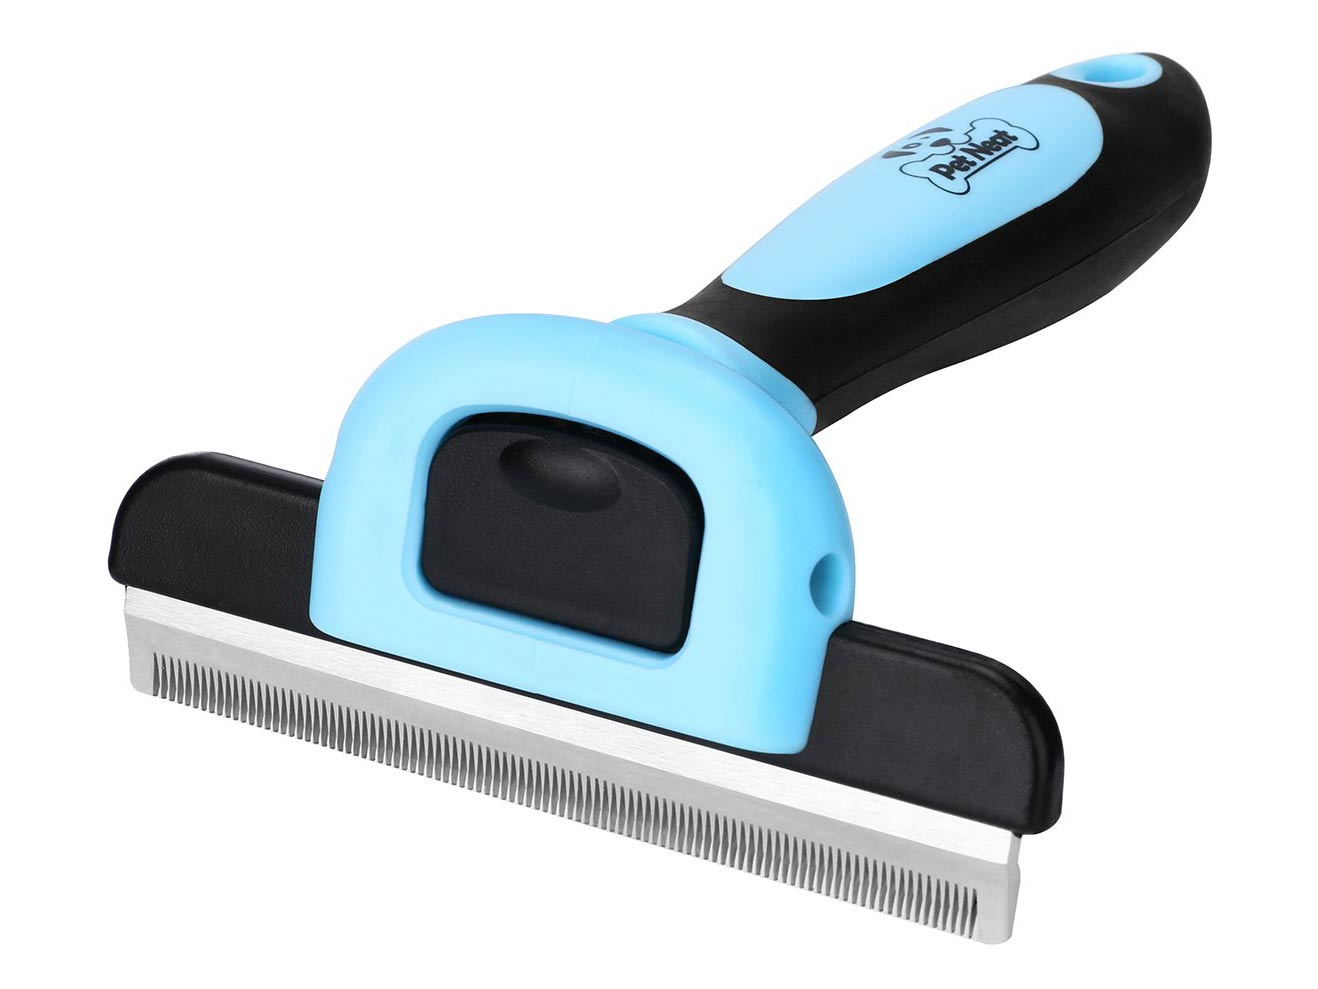 A blue pet-grooming fine-toothed brush.